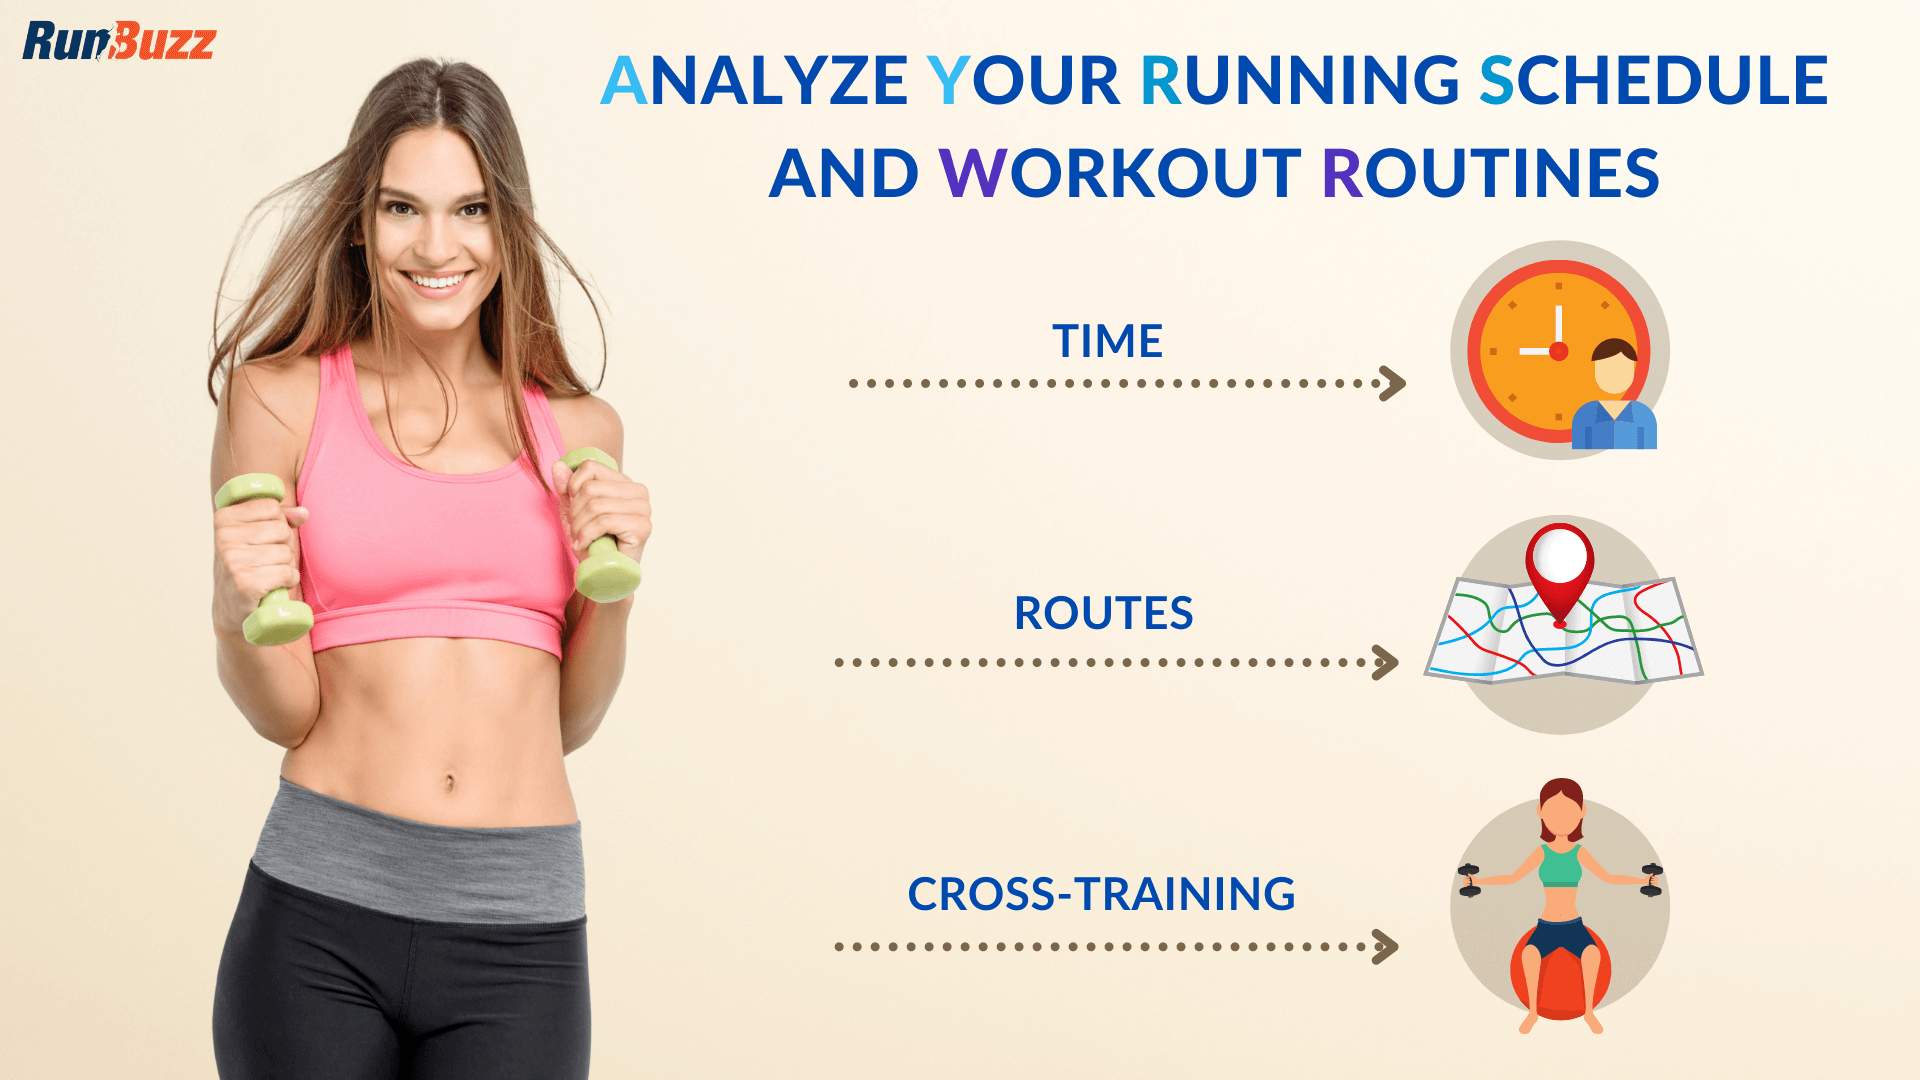 Analyze-your-running-schedule-and-workout-routines